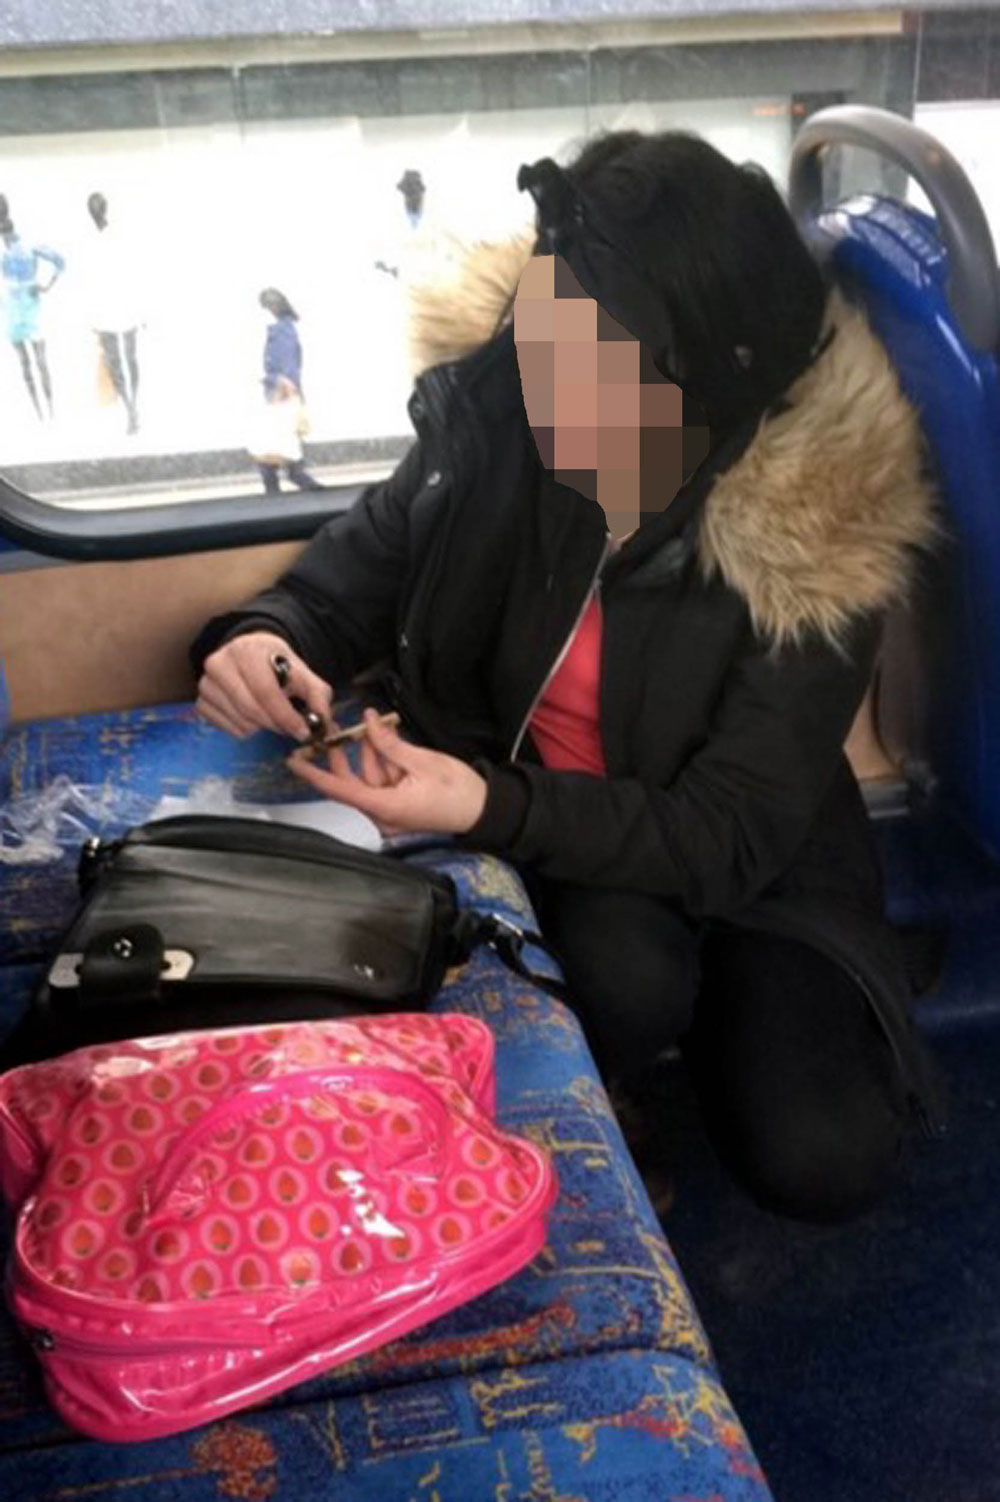 The woman prepares a pipe at the back of the bus